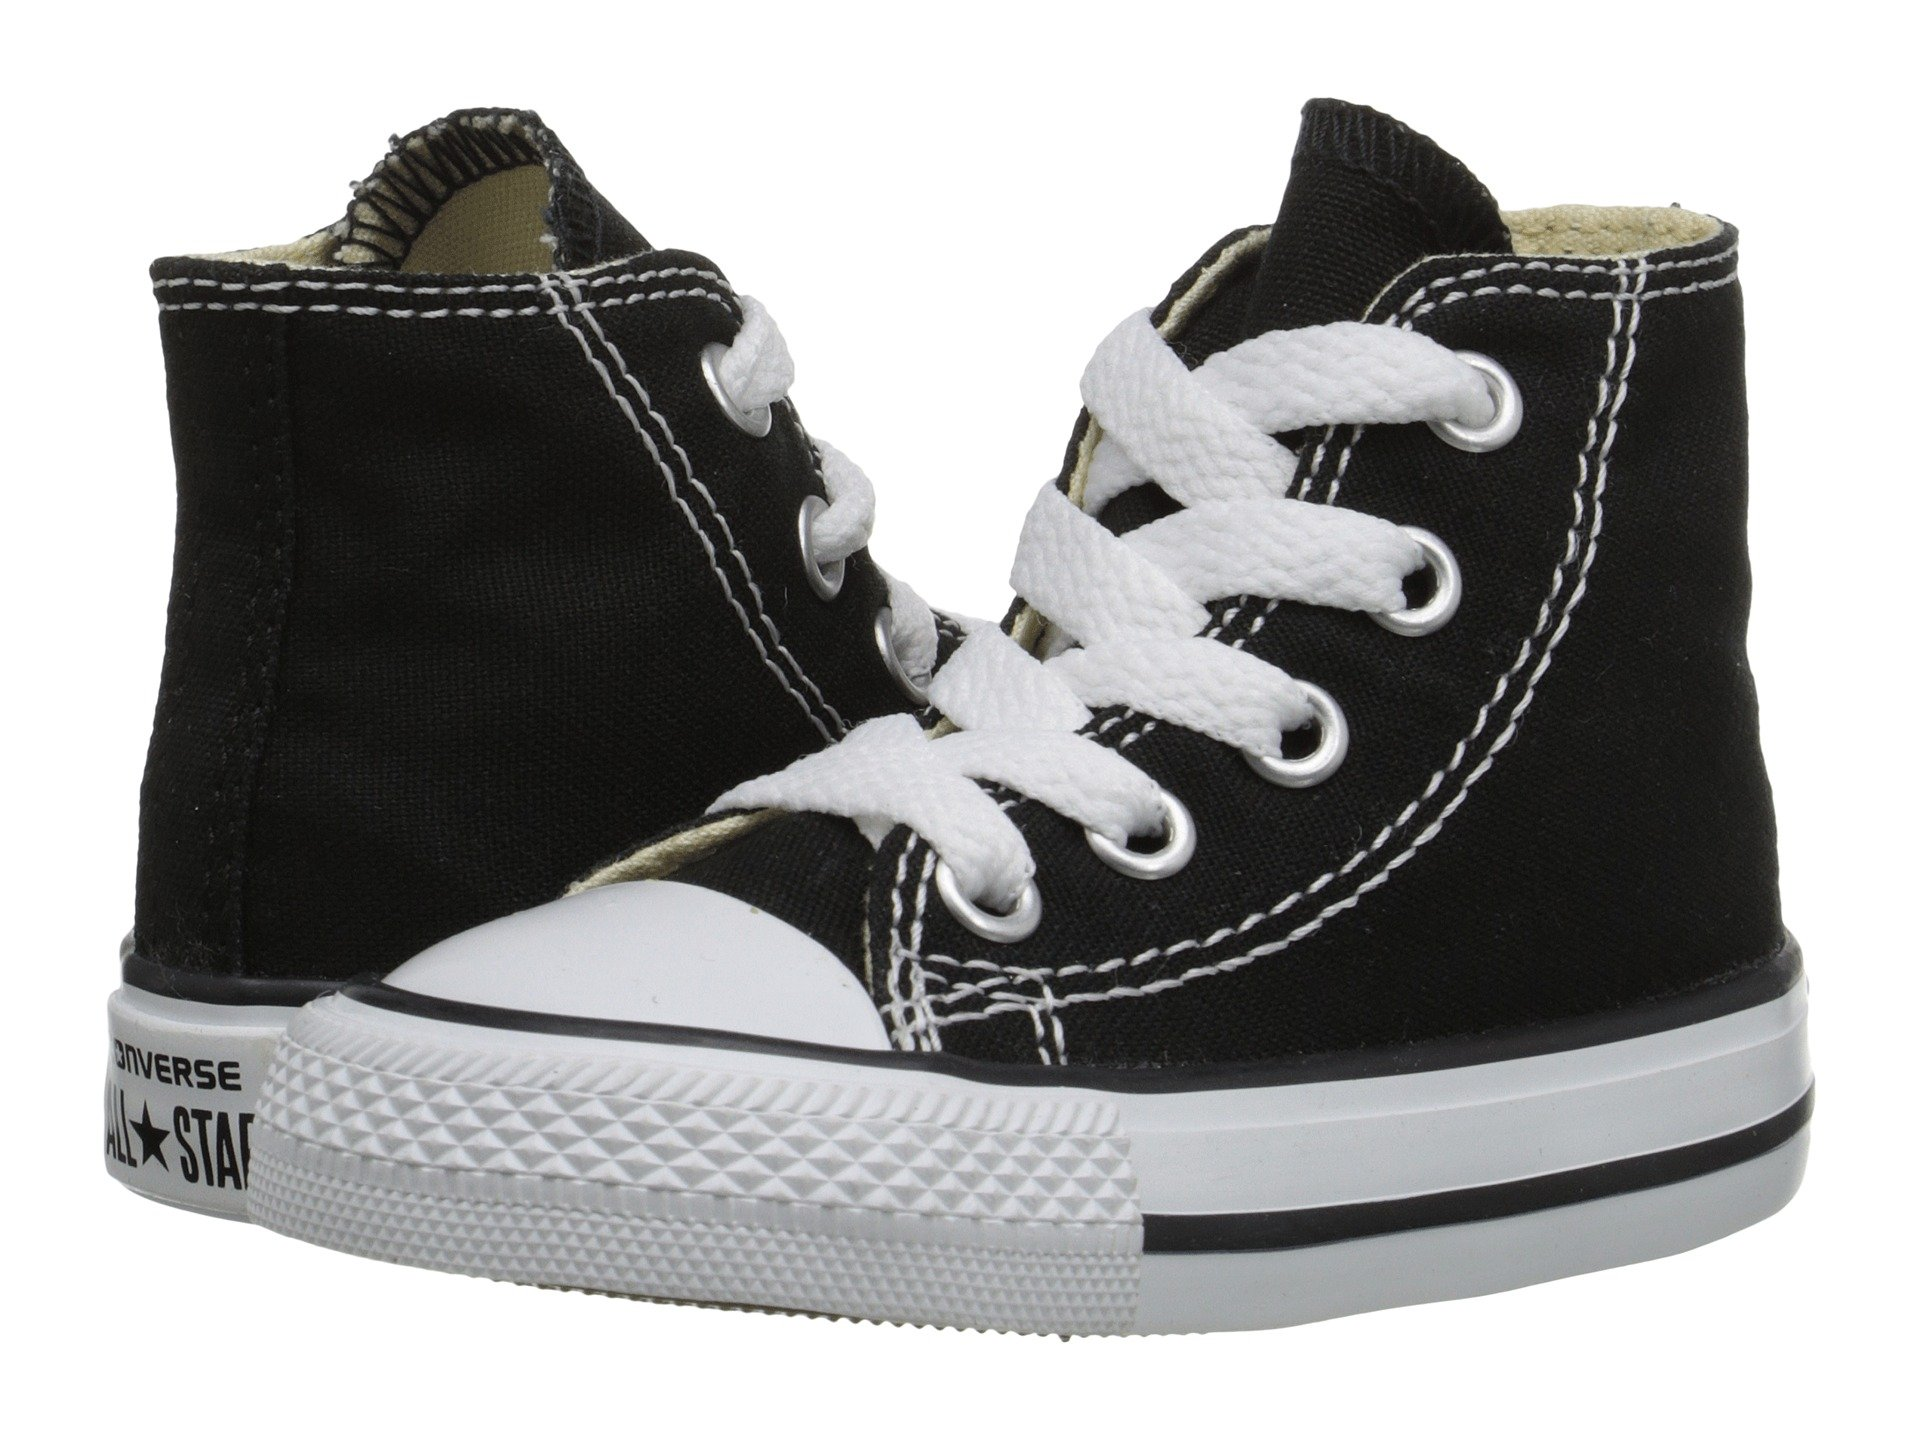 converse chuck taylor youth size 5